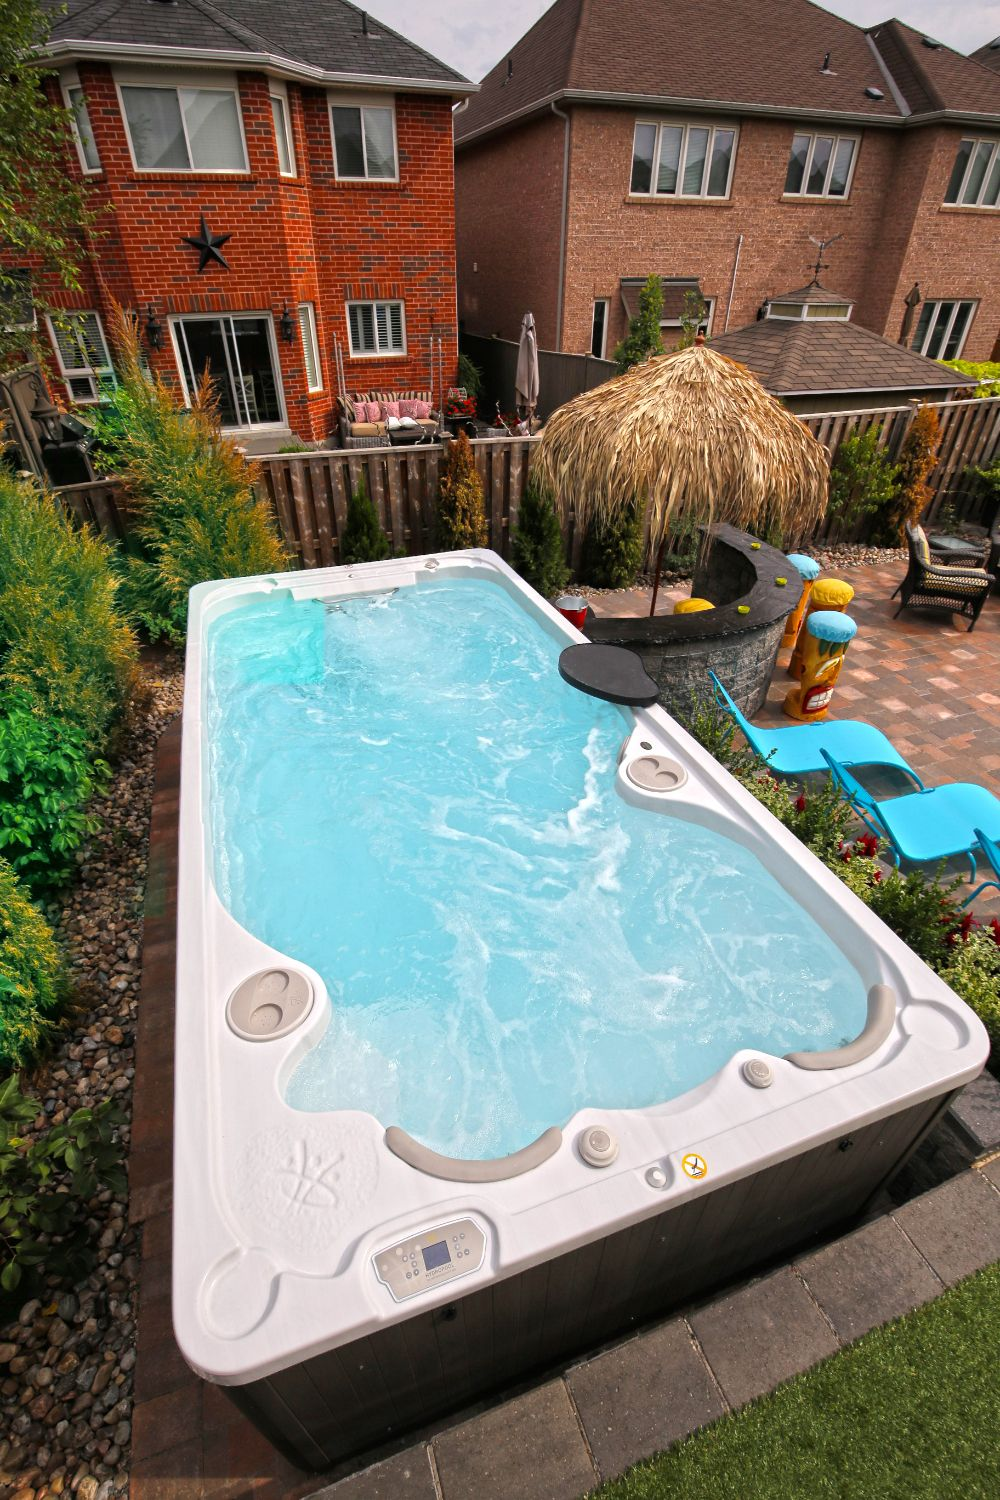 Spa Exterieur Enterré Swim Spa Installation Ideas Swim Spa Install Ideas Jacuzzi